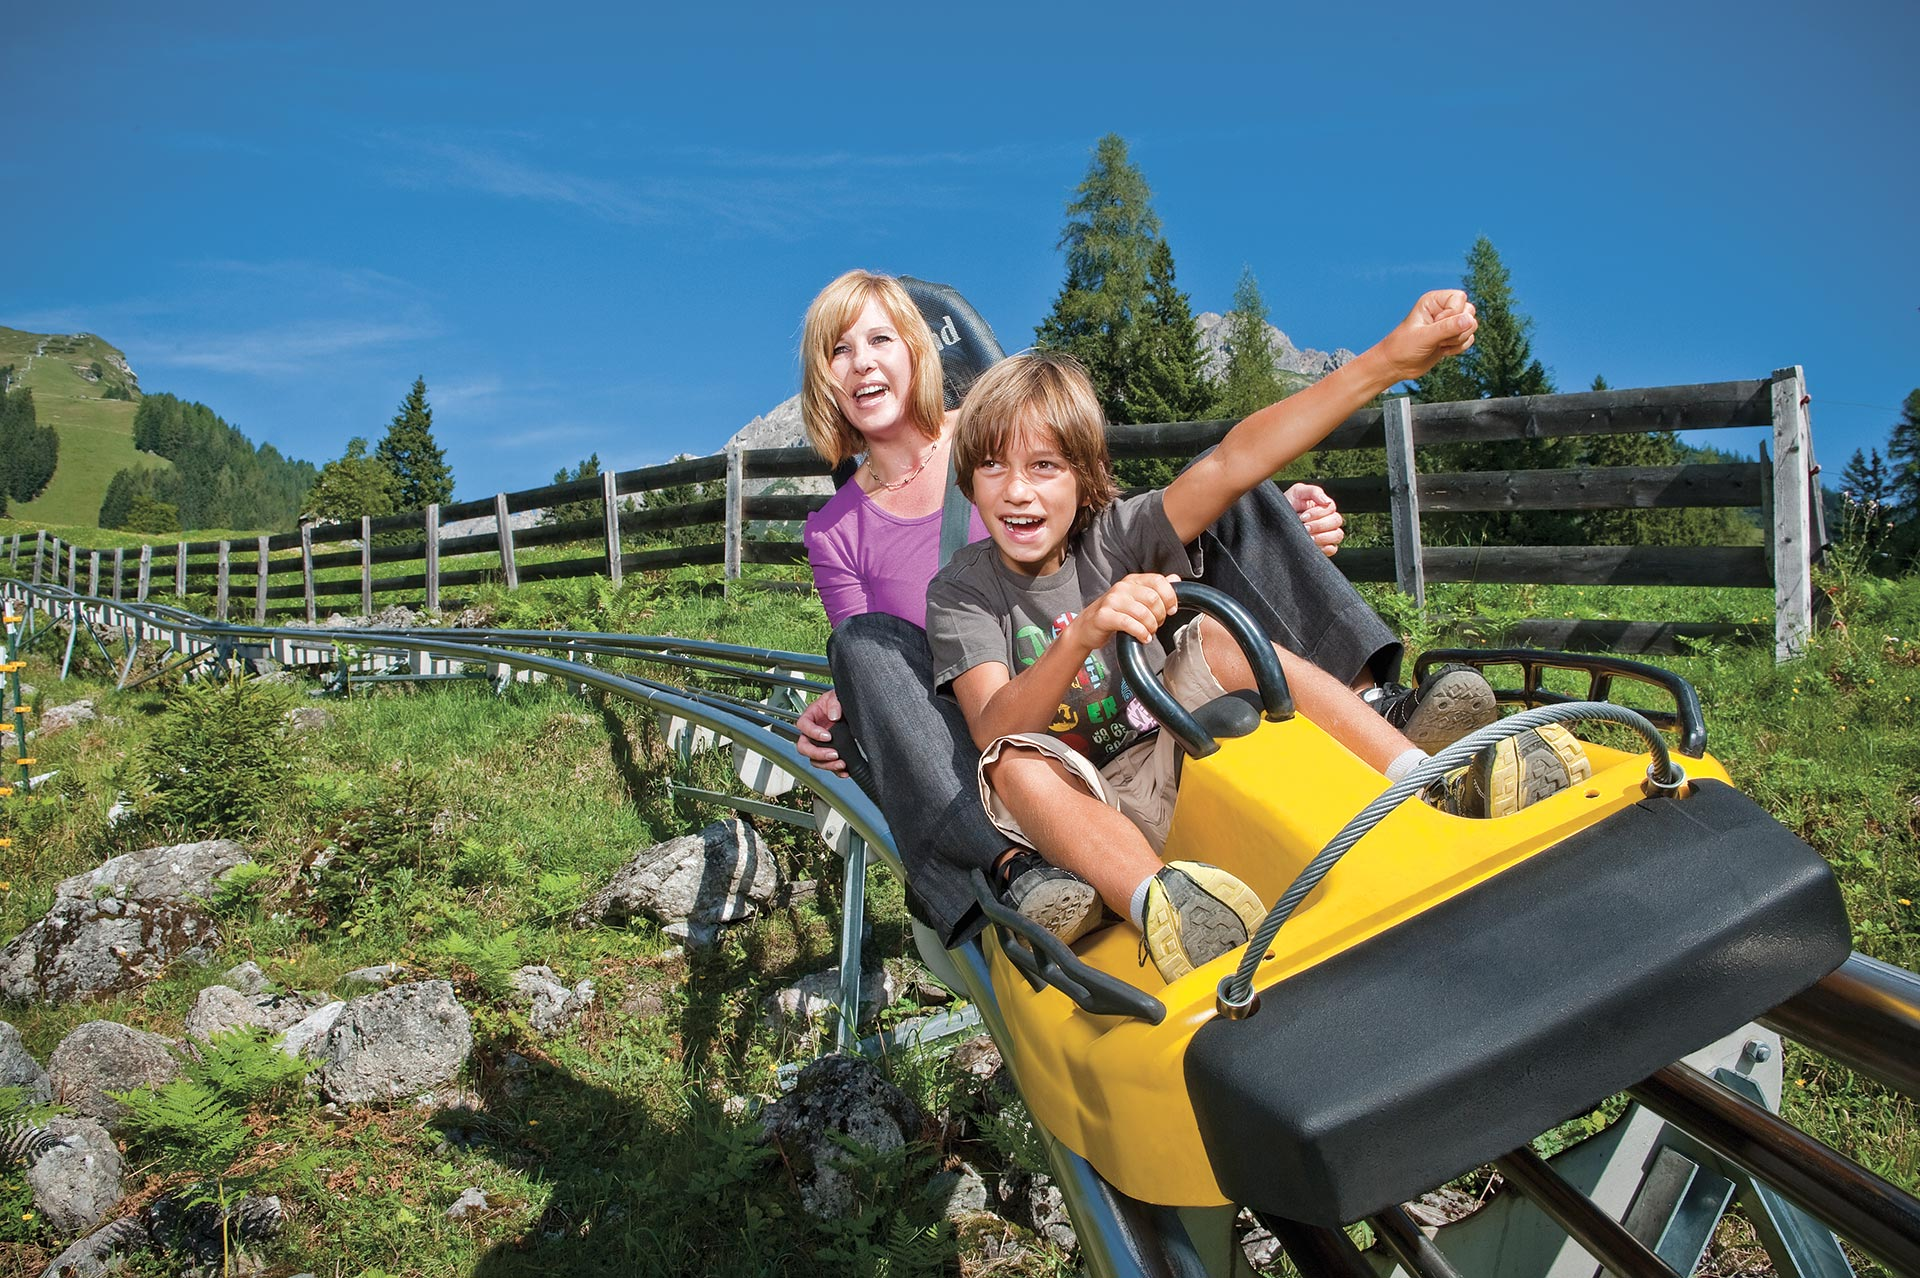 http://hotel-sailer.at/sites/default/files/alpine_coaster_3.jpg